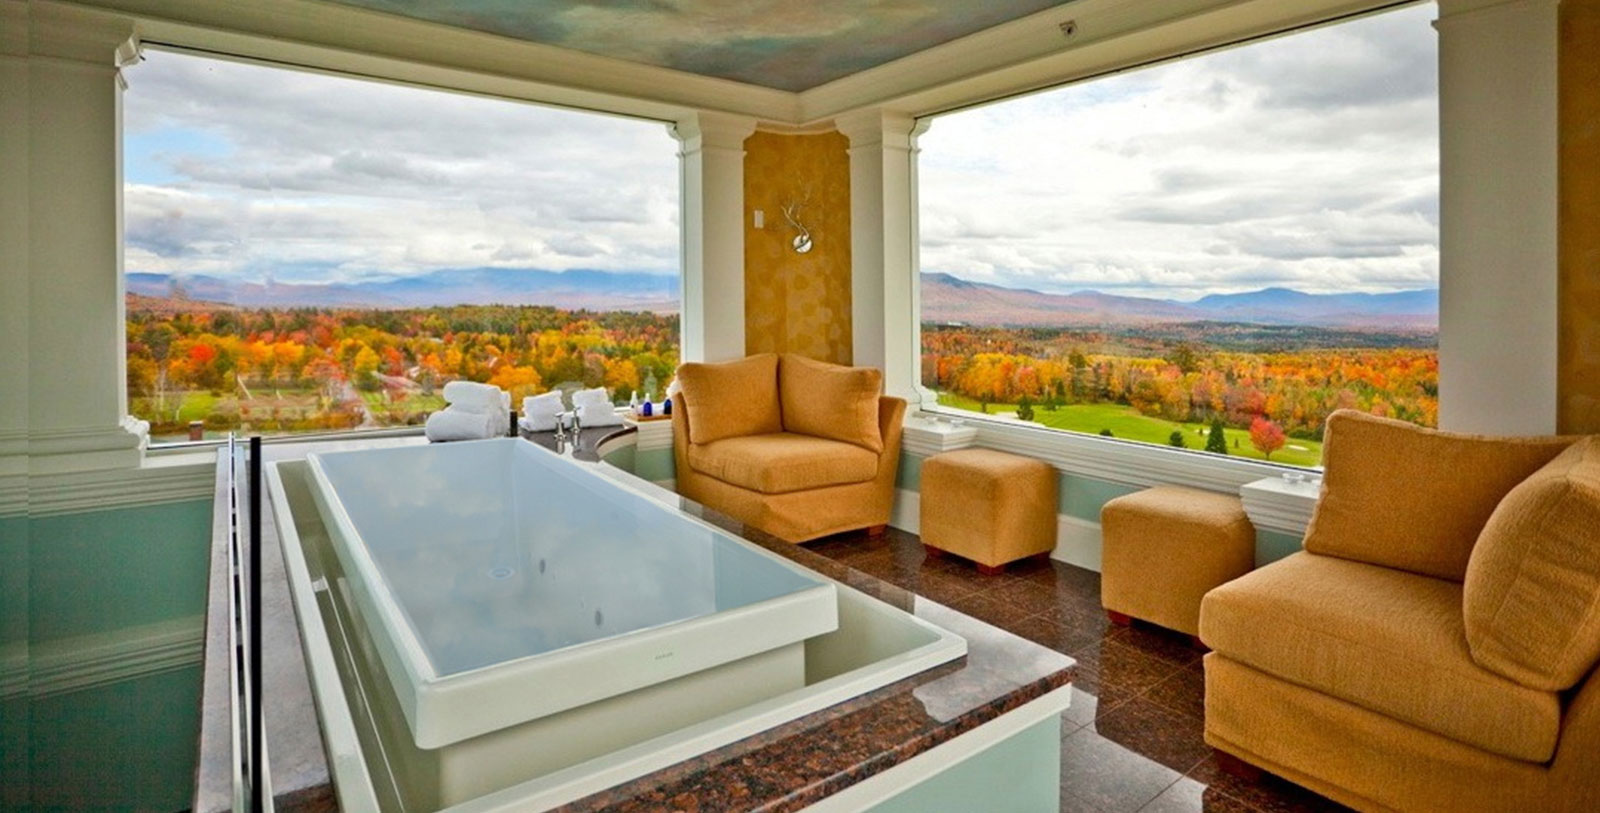 Image of Sok Tub, Mountain View Grand Resort & Spa in Whitefield, New Hampshire, 1865, Member of Historic Hotels of America, Spa